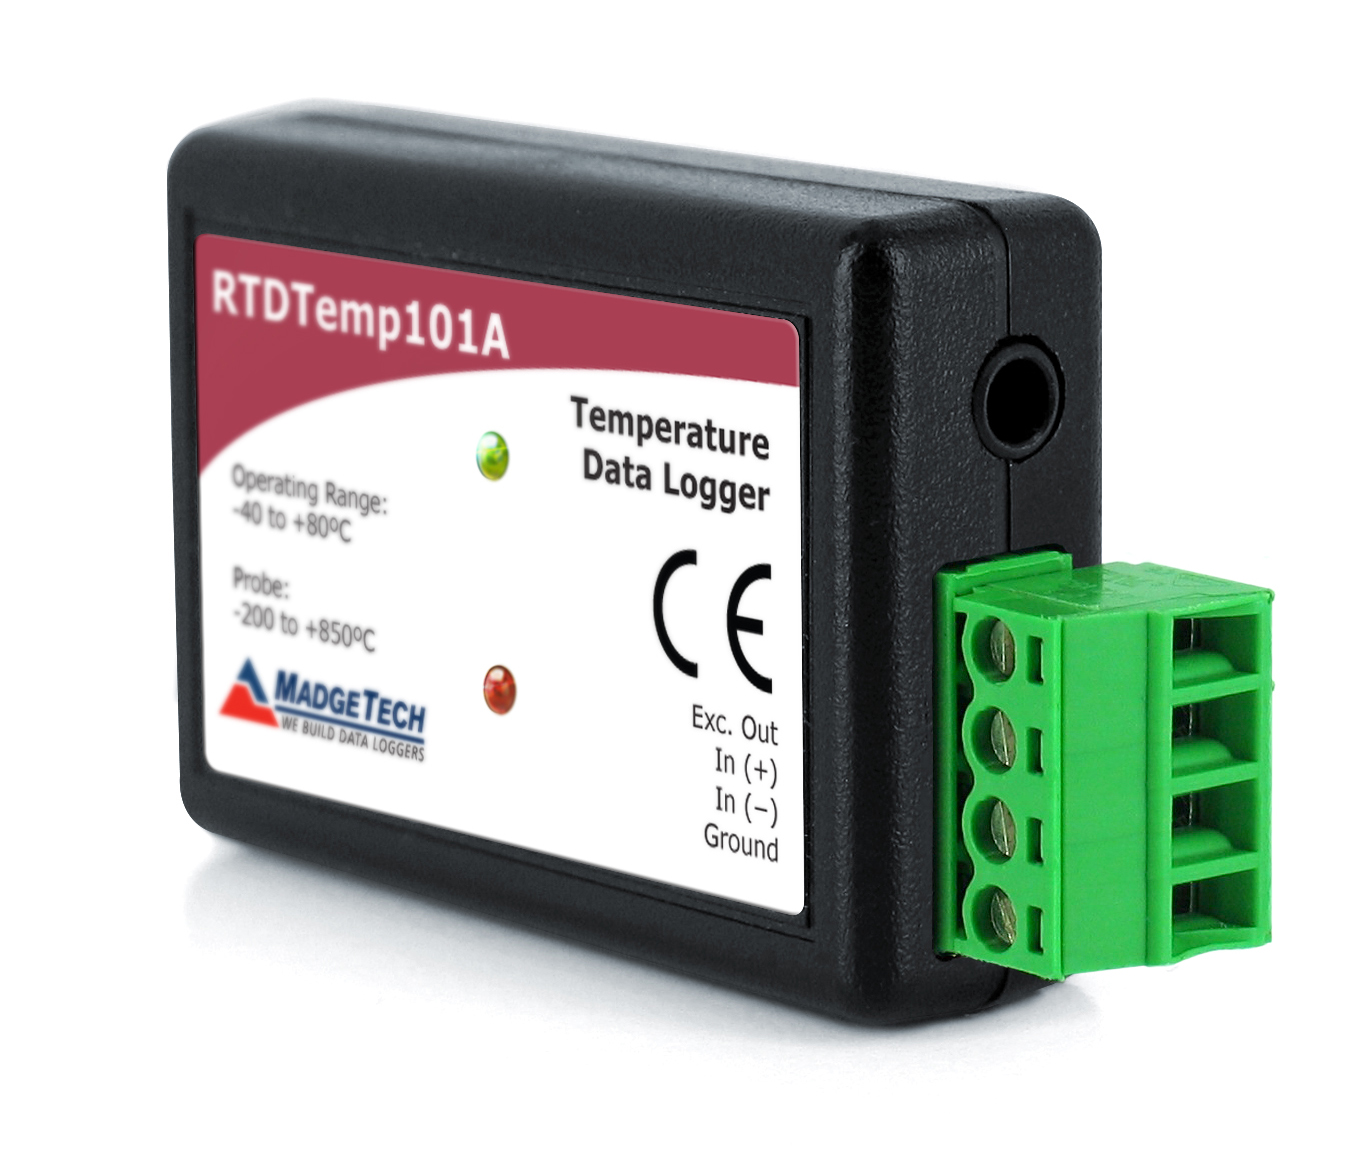 RTDTemp101A temperature data logger